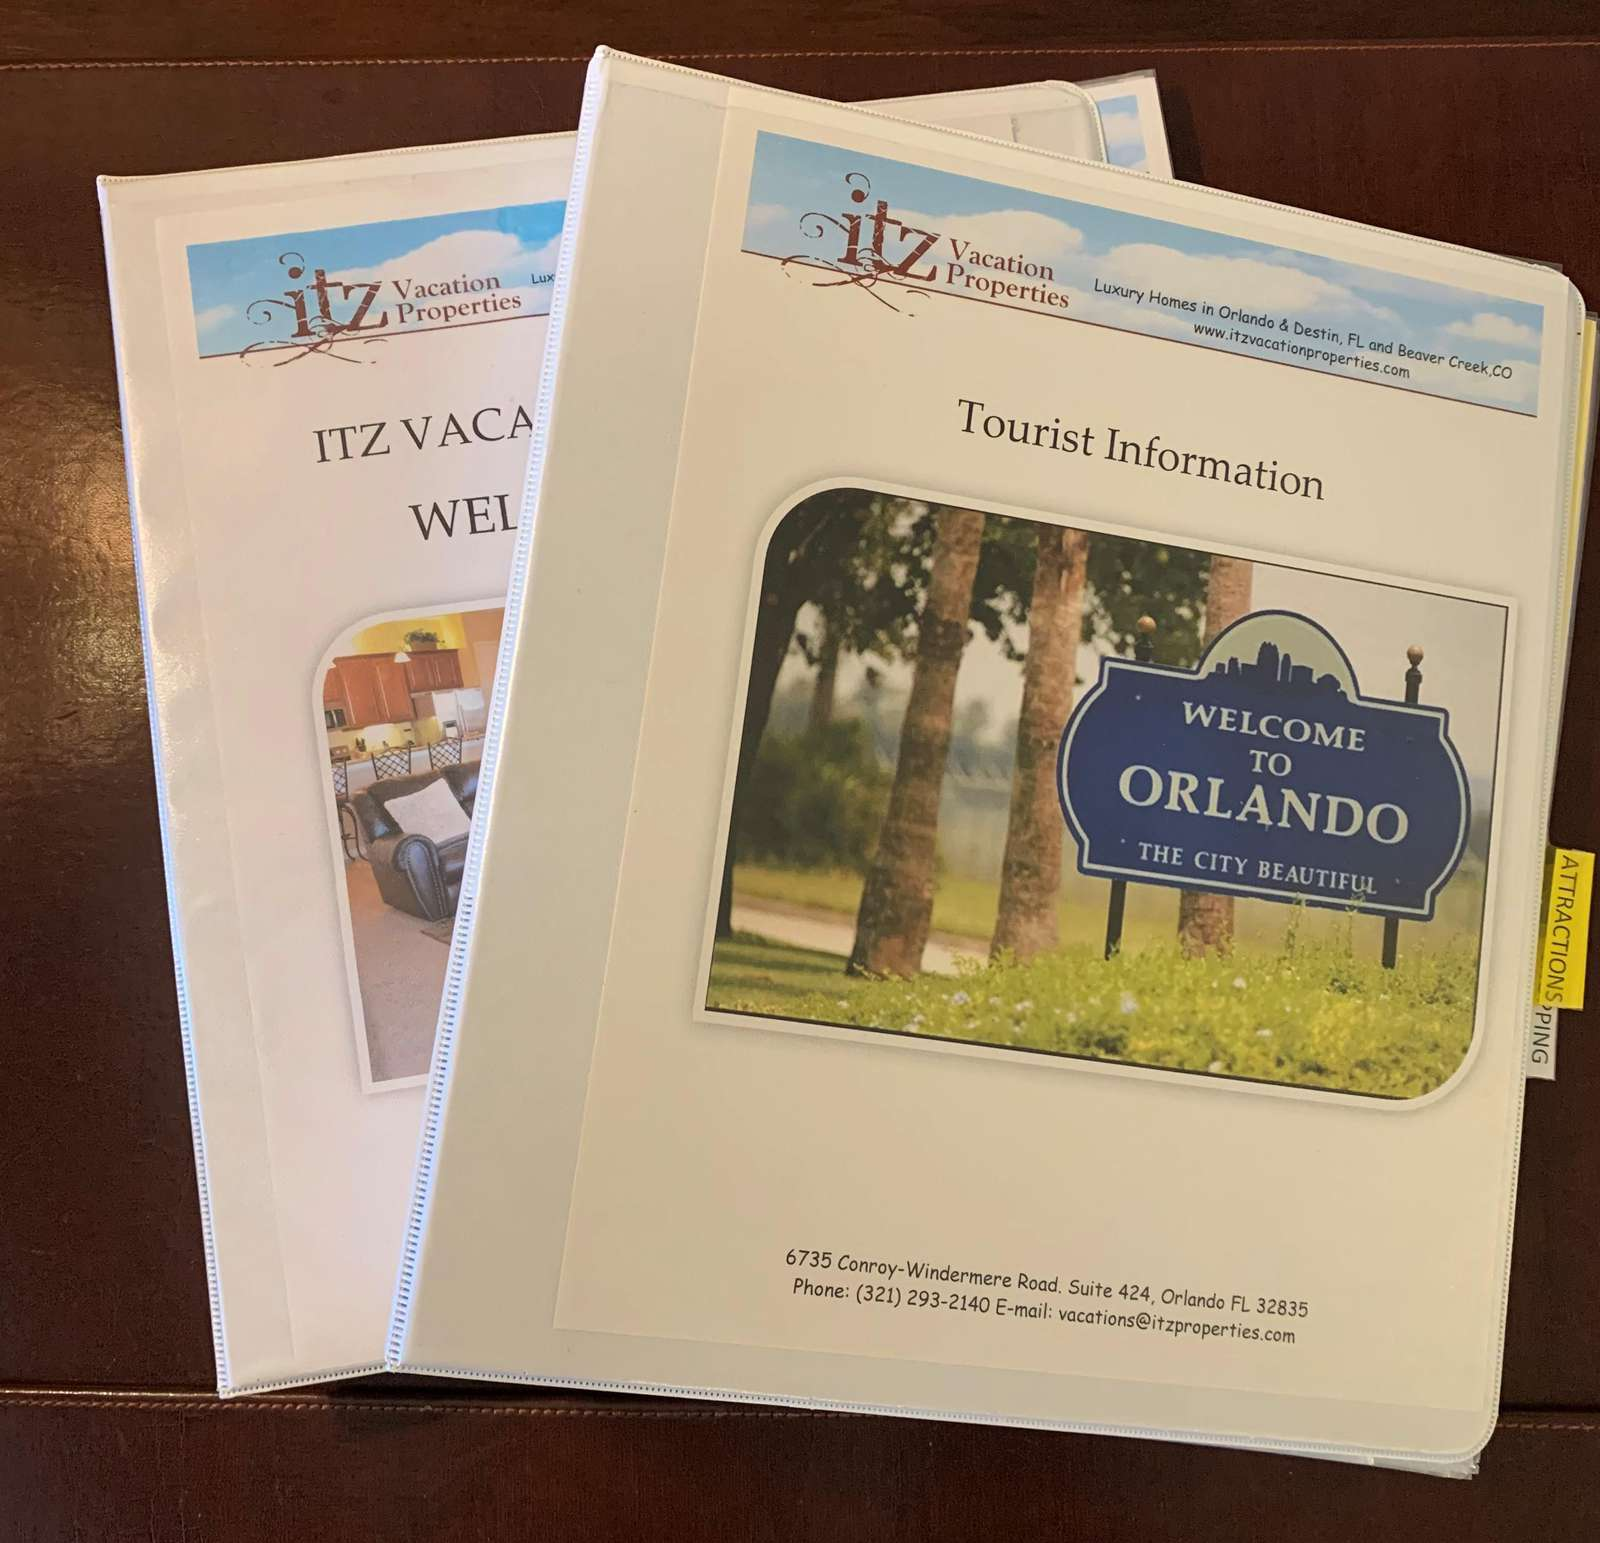 Booklets with important information to make your stay comfortable